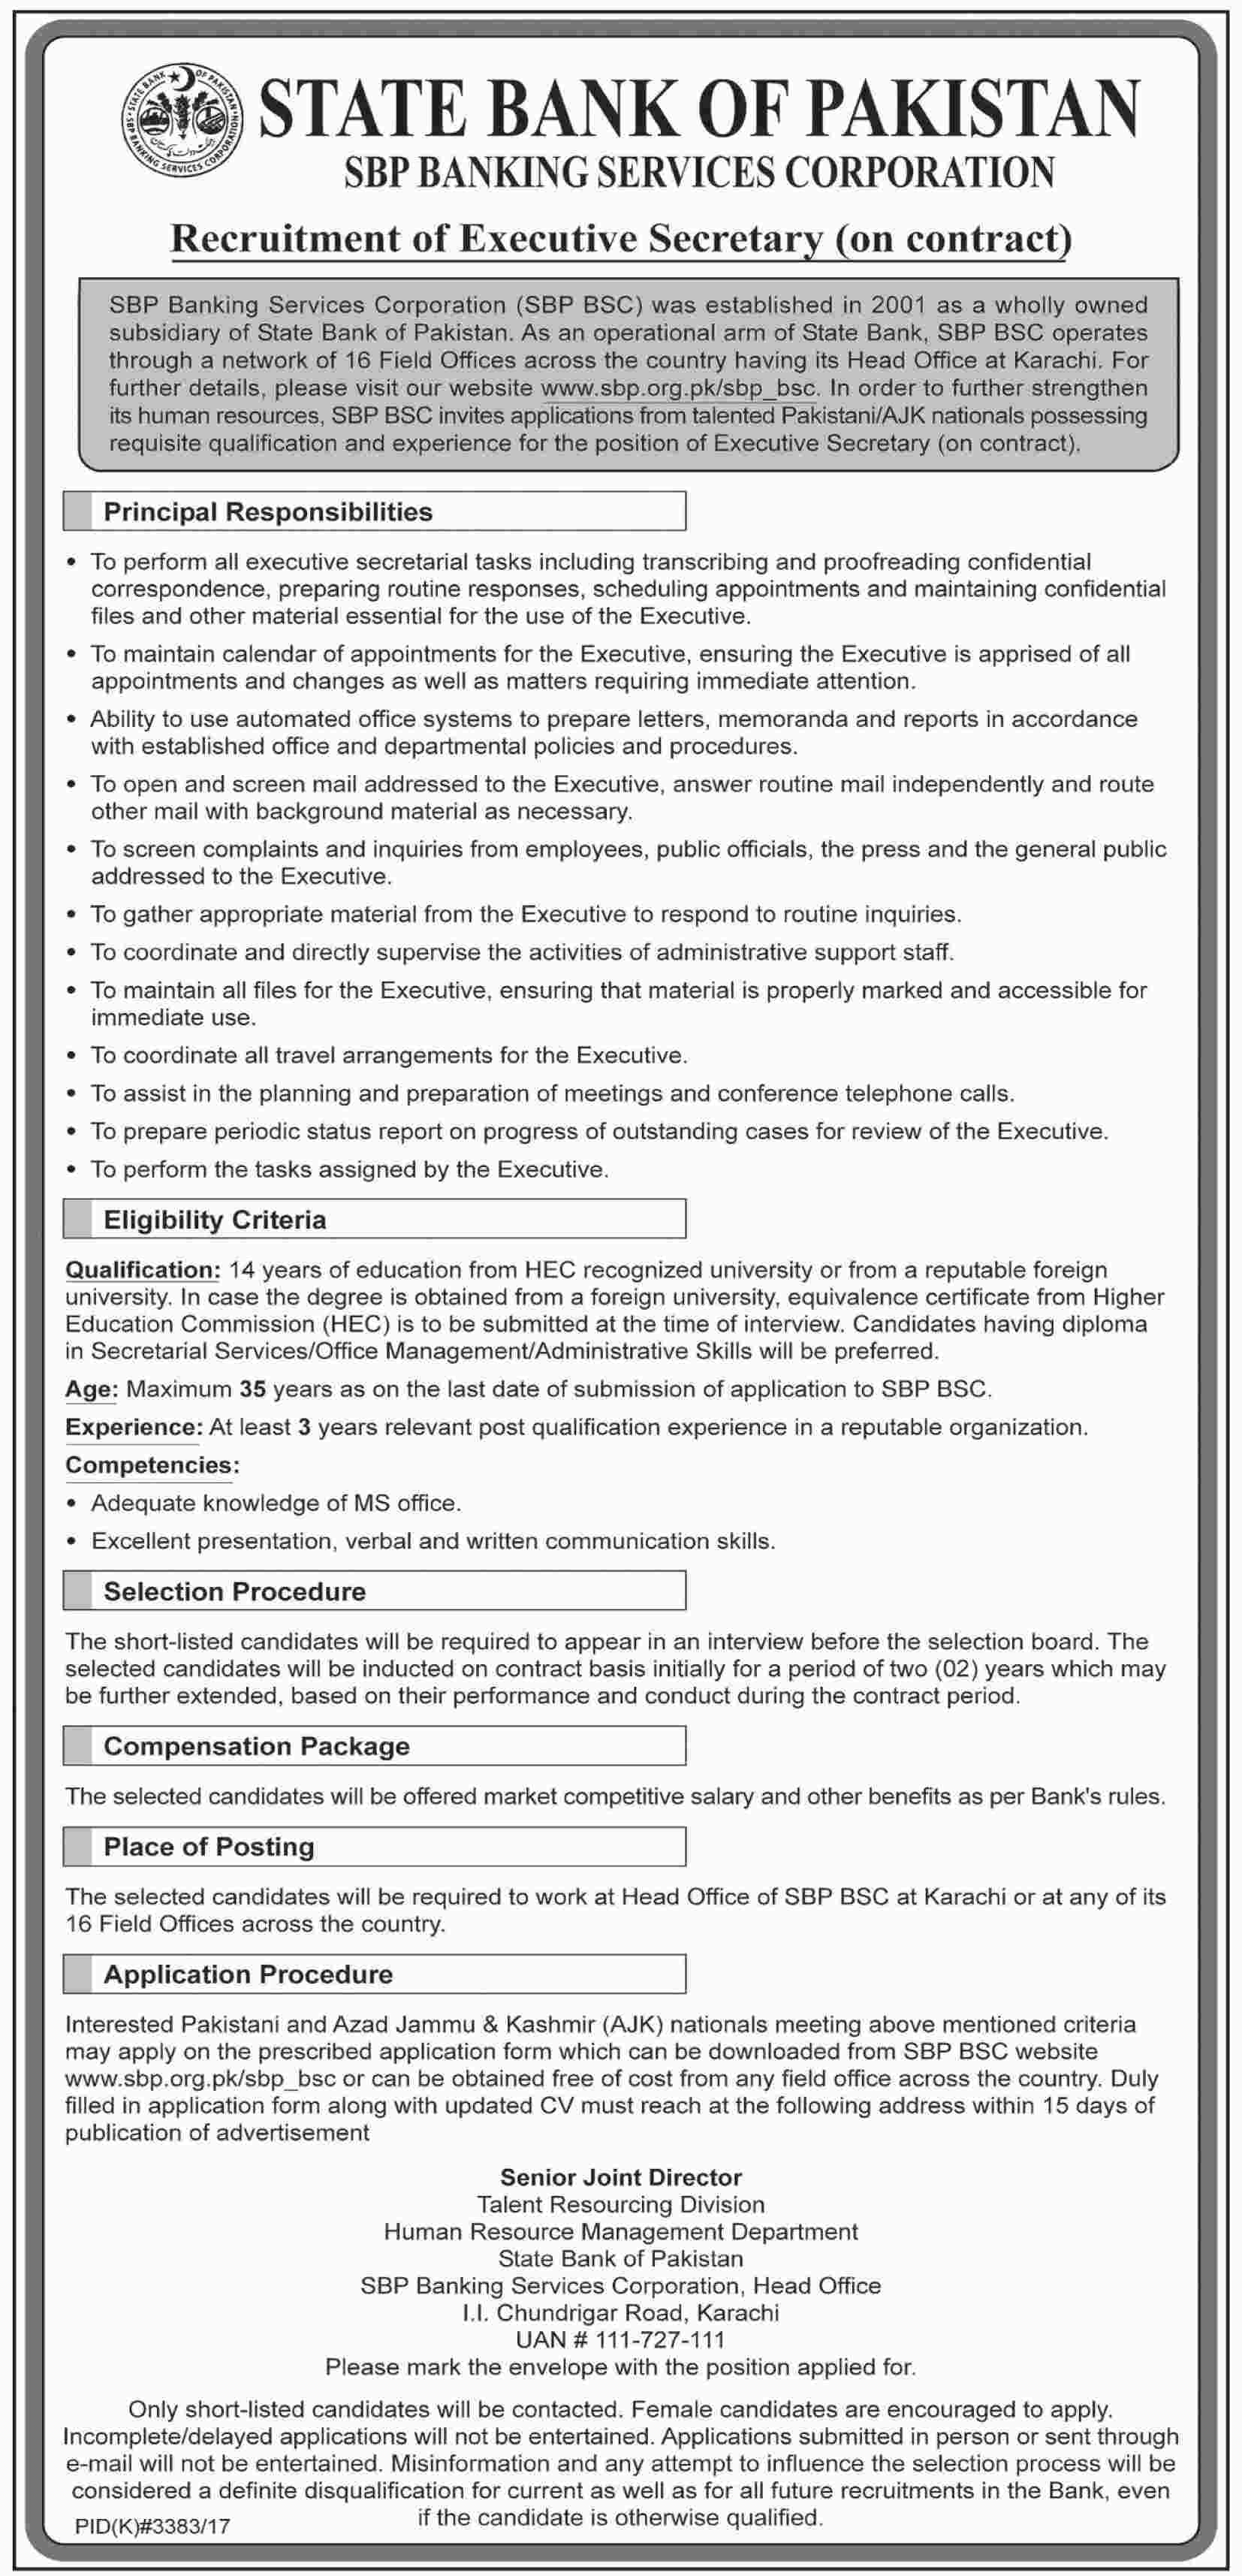 Jobs in State Bank of Pakistan 11 March 2018